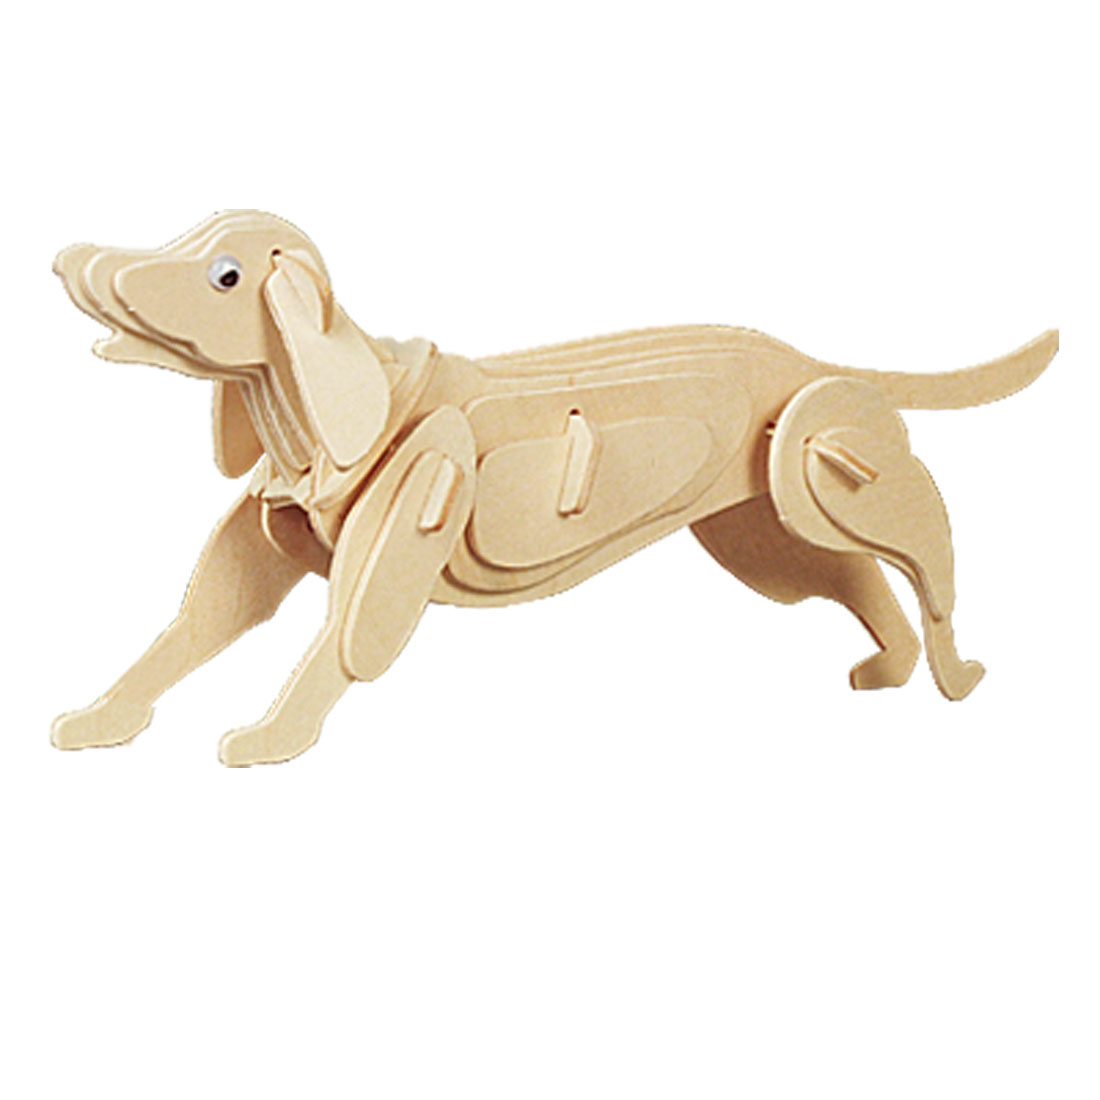 DIY Dog Model Woodcraft Construction Kit 3D Puzzle Toy